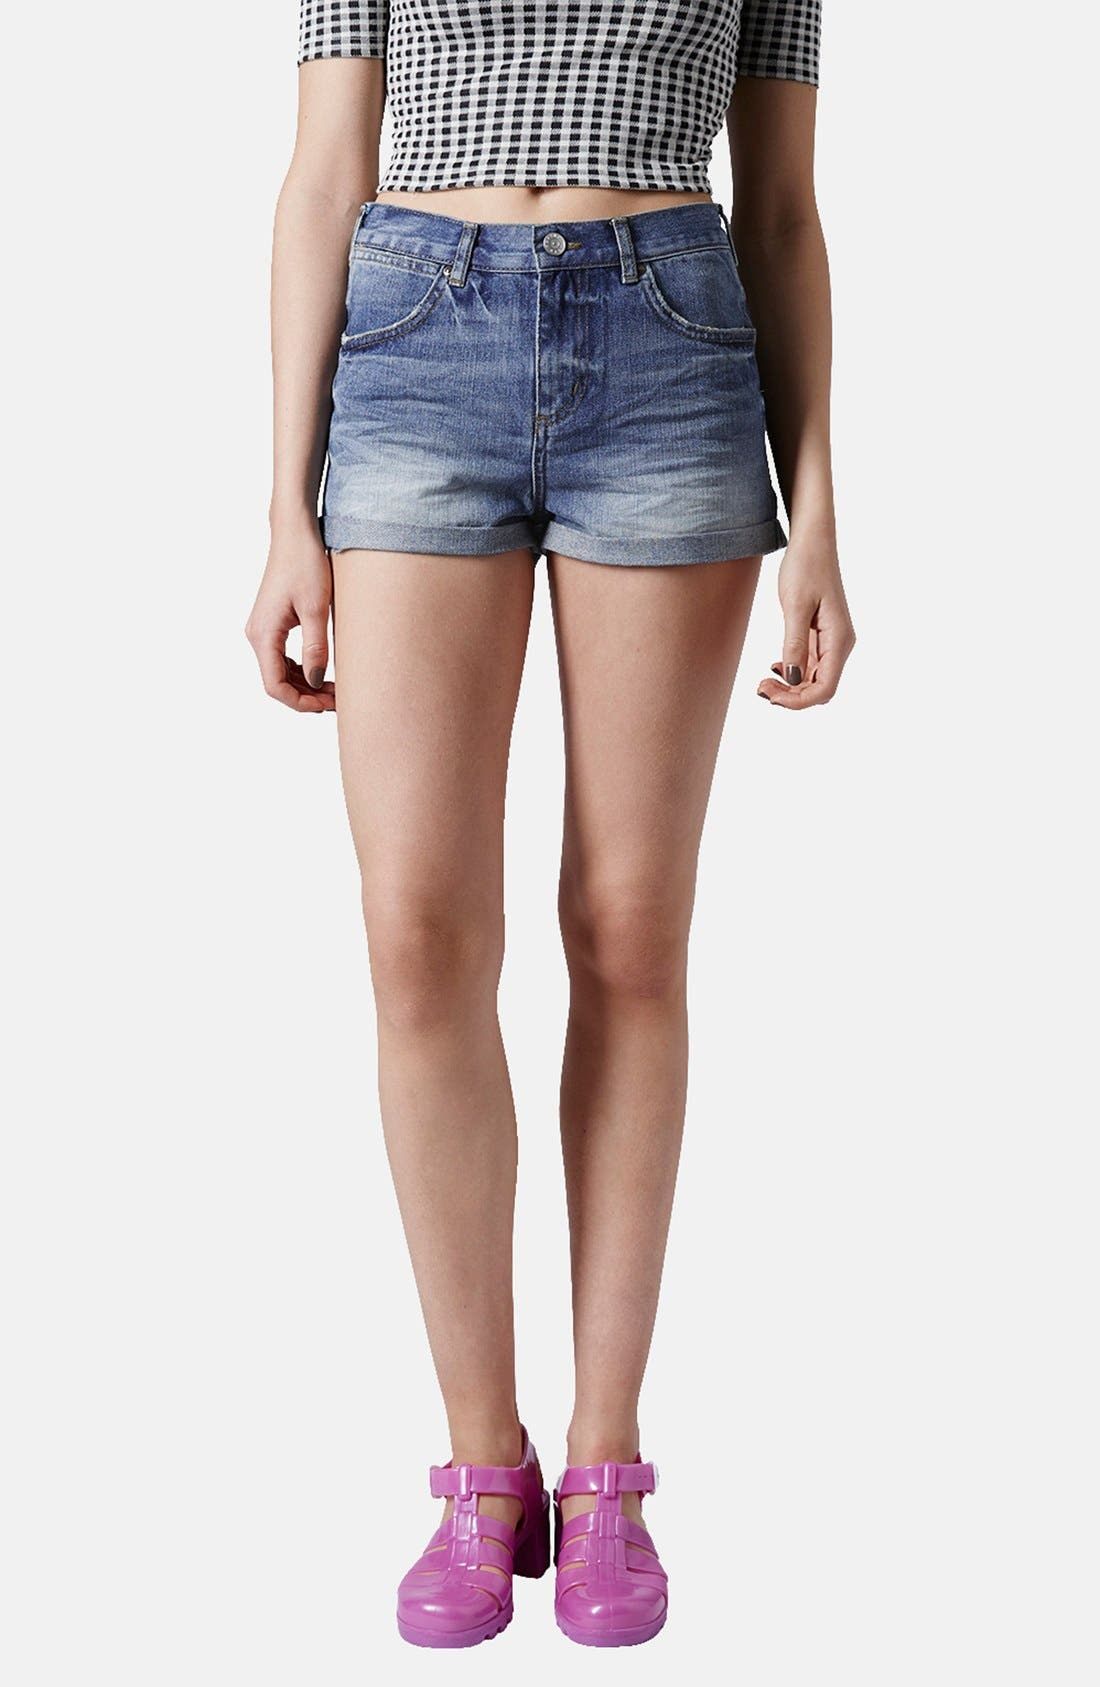 Alternate Image 1 Selected - Topshop 'Rosa' High Rise Denim Shorts (Mid) (Petite)